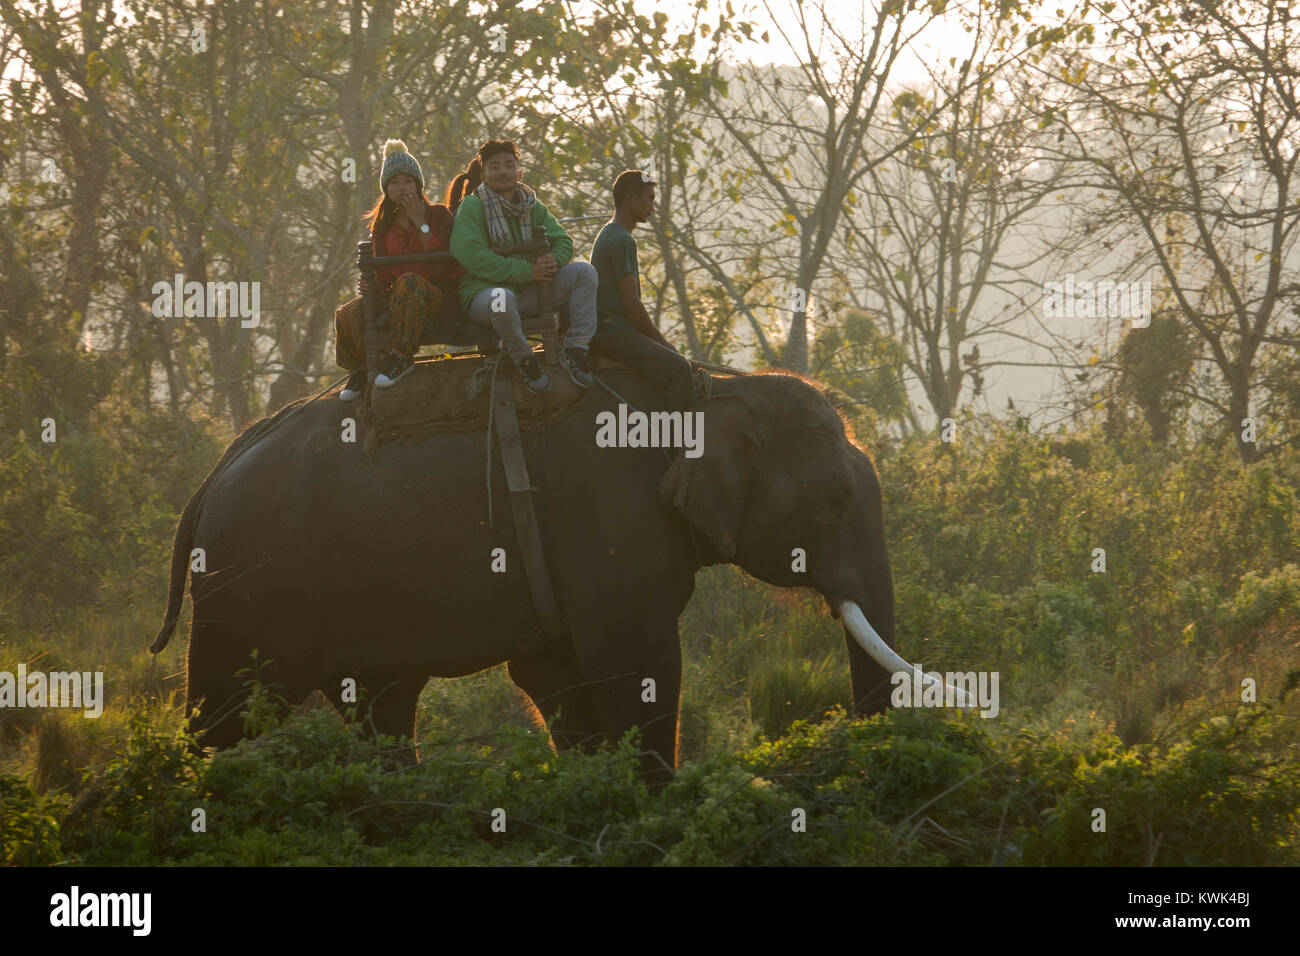 Les touristes sur elephant jungle safari dans le parc national de Chitwan, au Népal Photo Stock